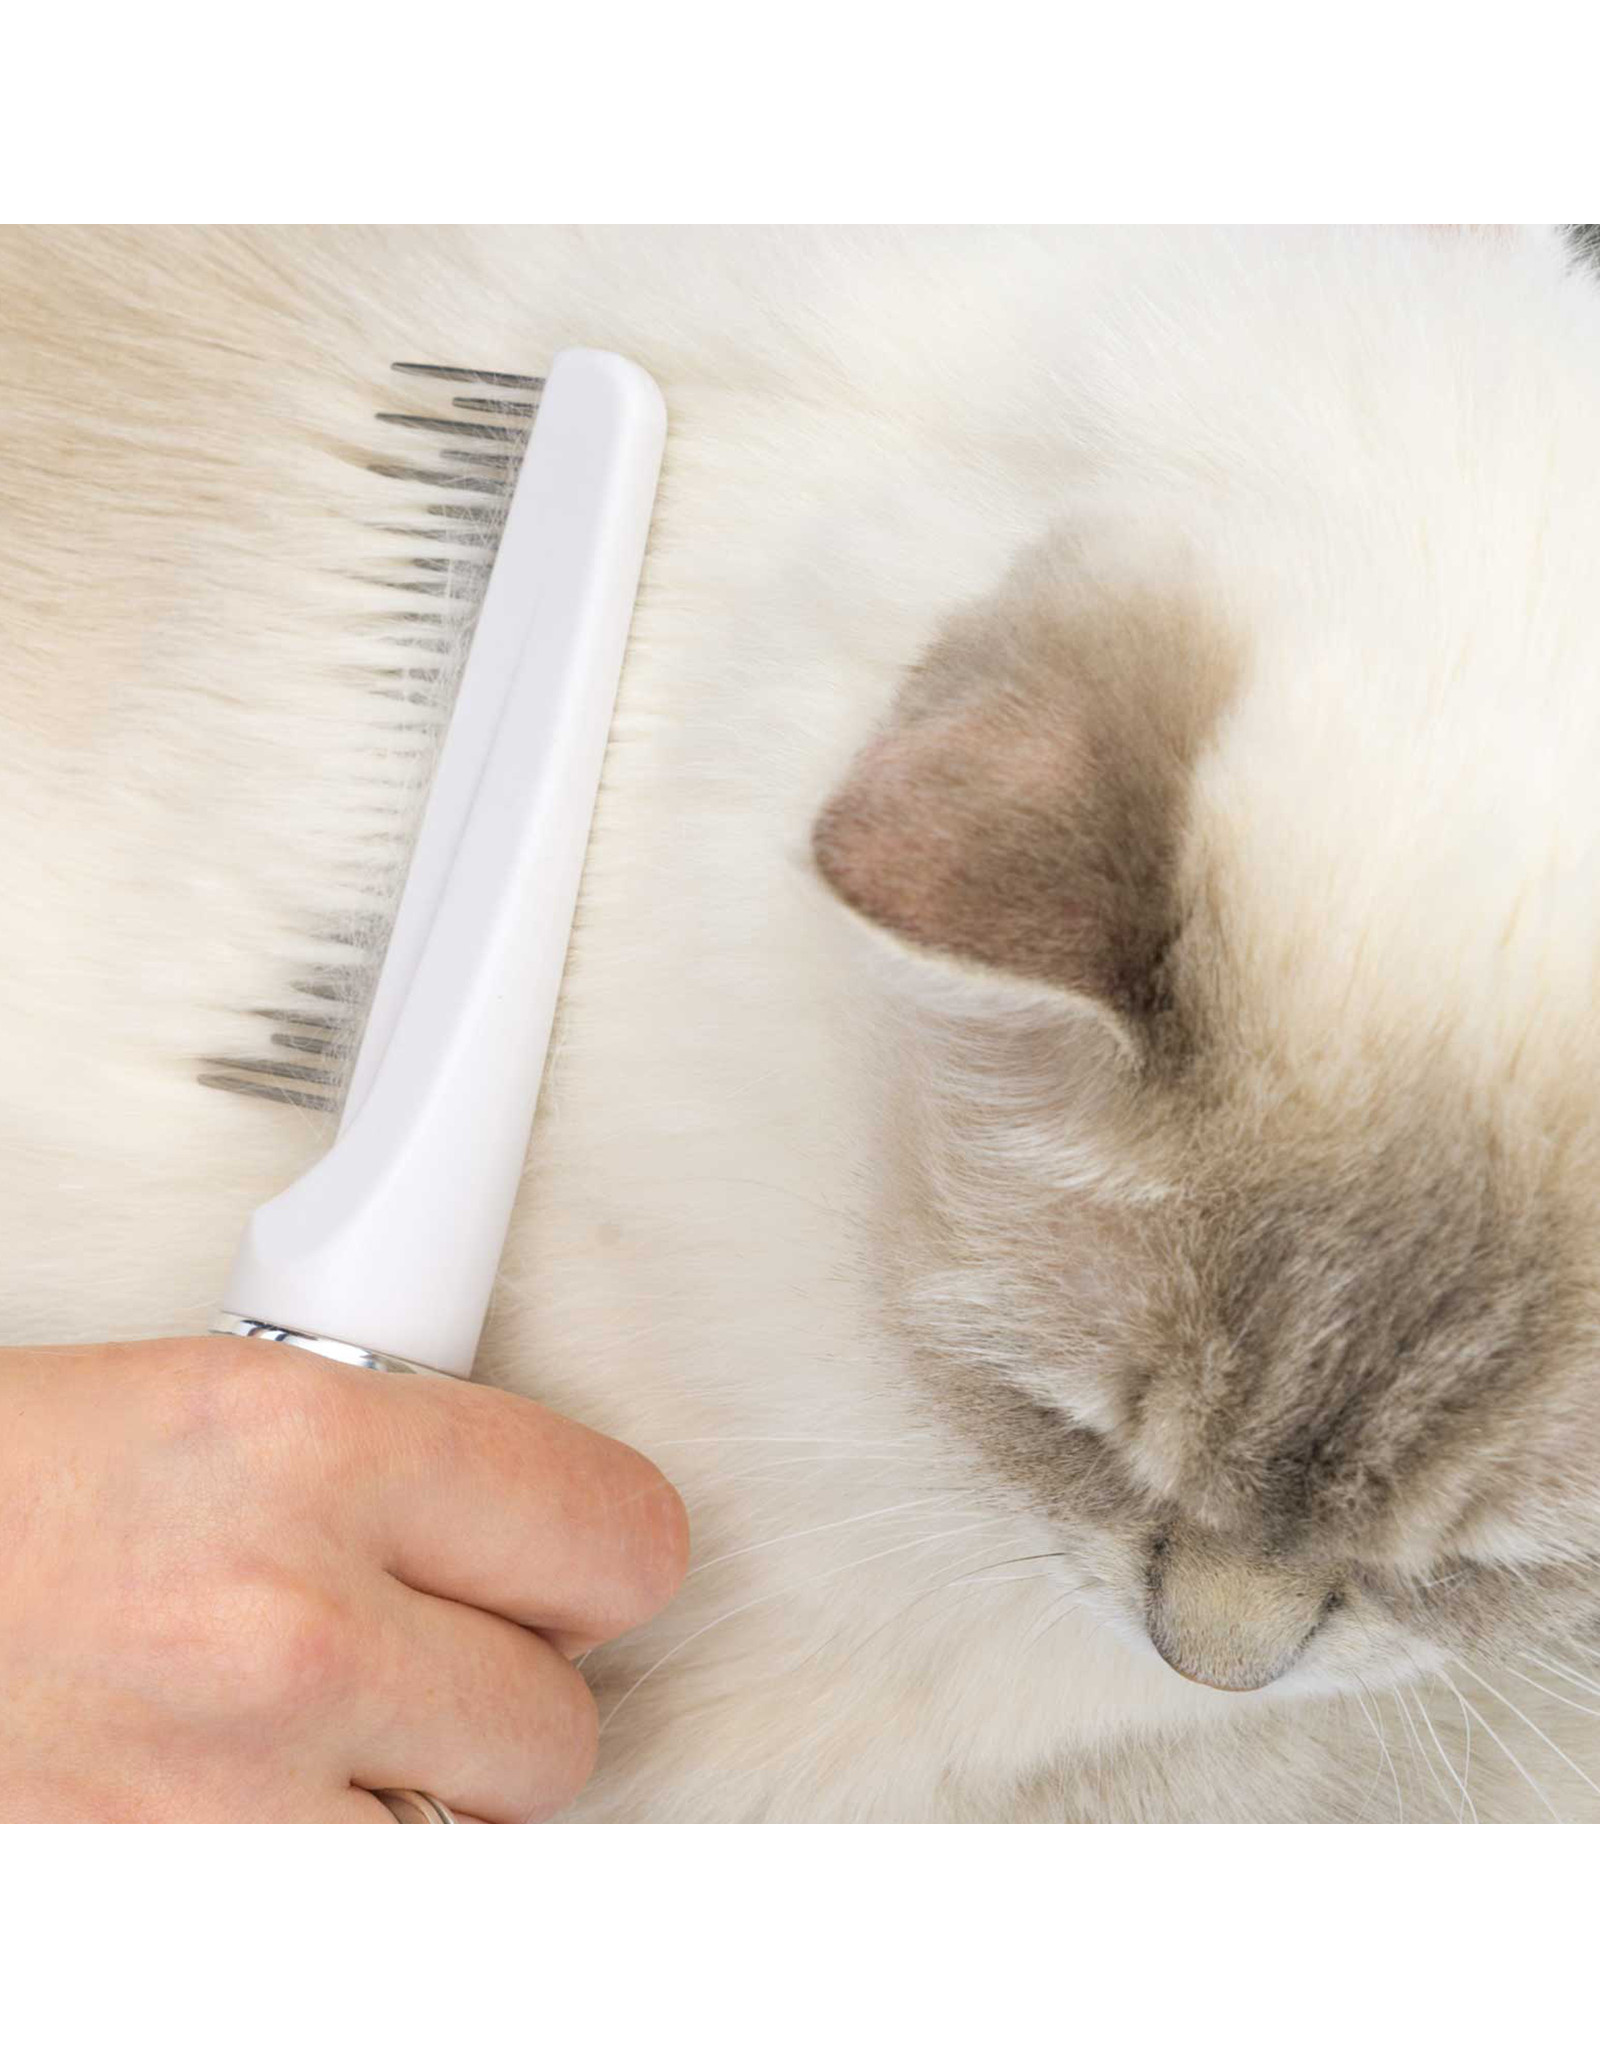 CT - Catit 2.0 Catit Grooming Kit Long Hair